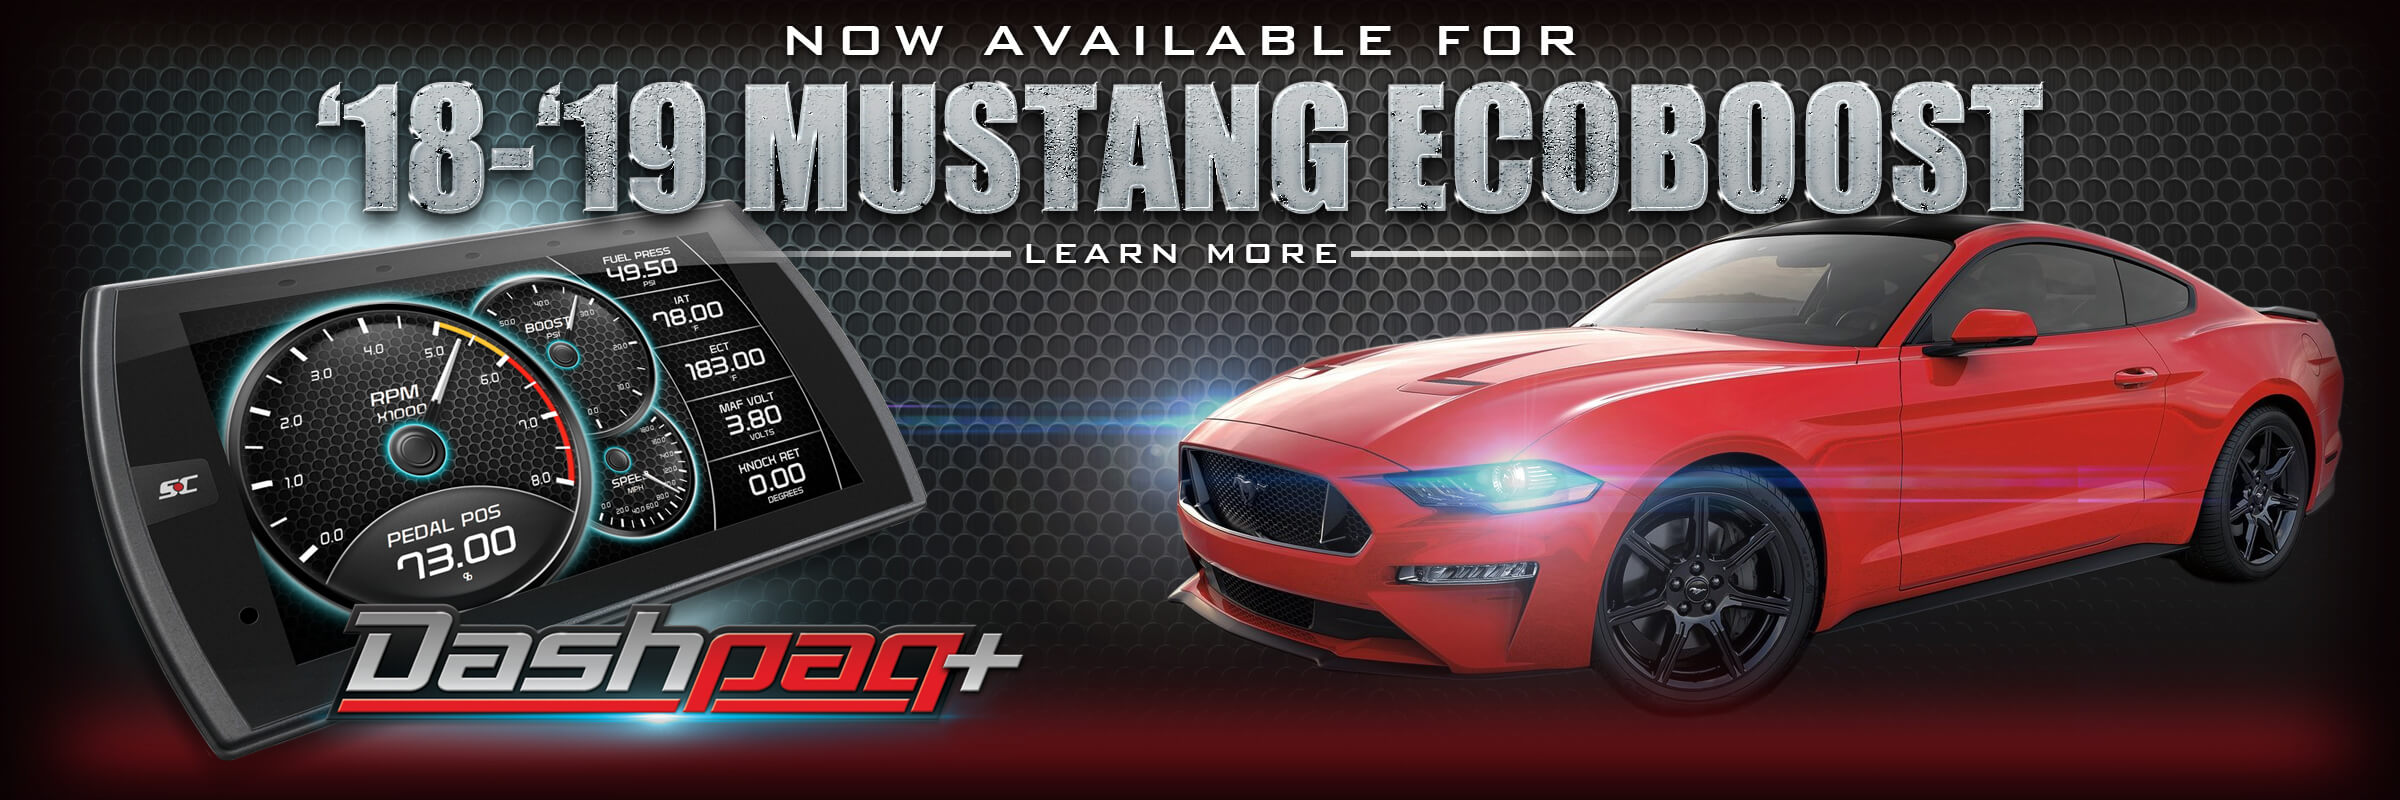 Mustang Ecoboost Tune >> Superchips 2018 2019 2 3l Mustang Ecoboost Tuning Now Available